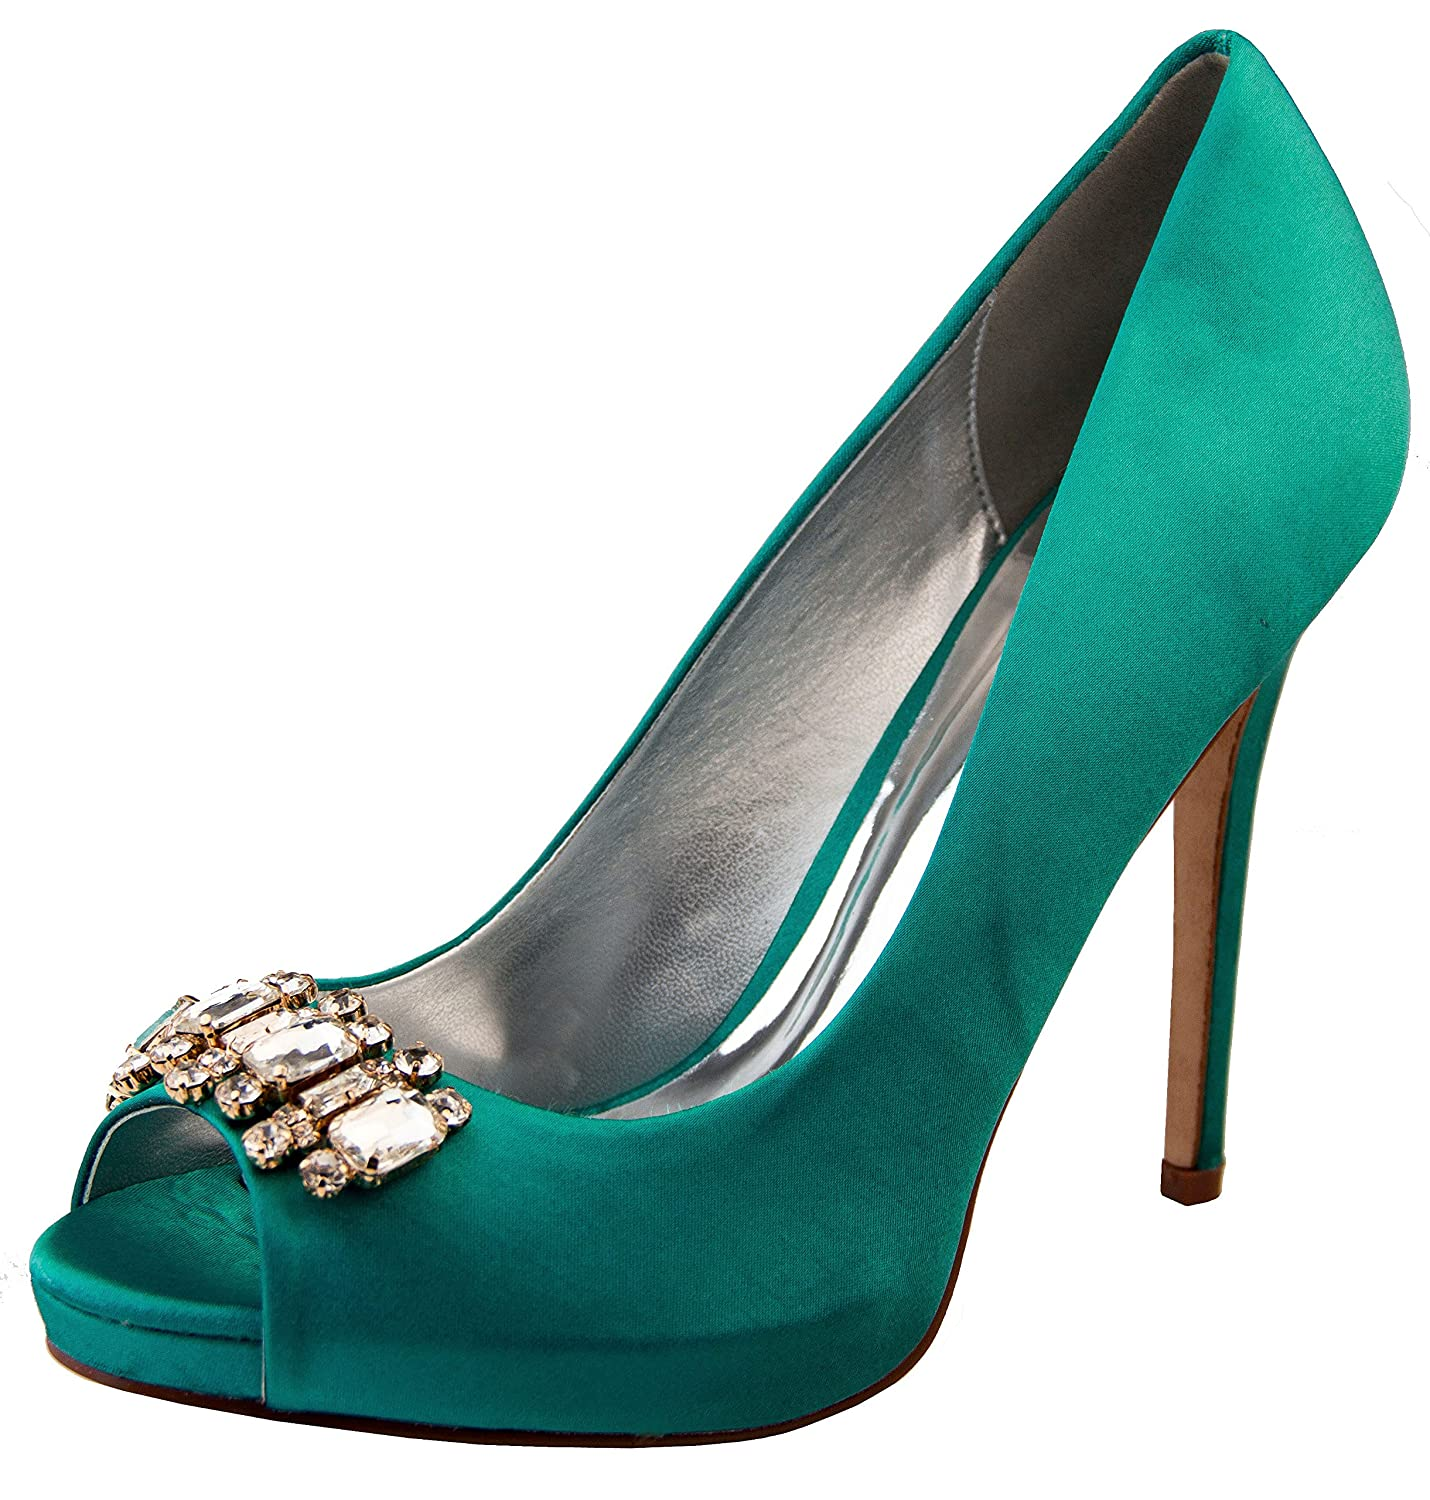 90a01b1d433 Footwear Studio Womens Sabatine Teal Satin Diamante Cluster Bridal ...